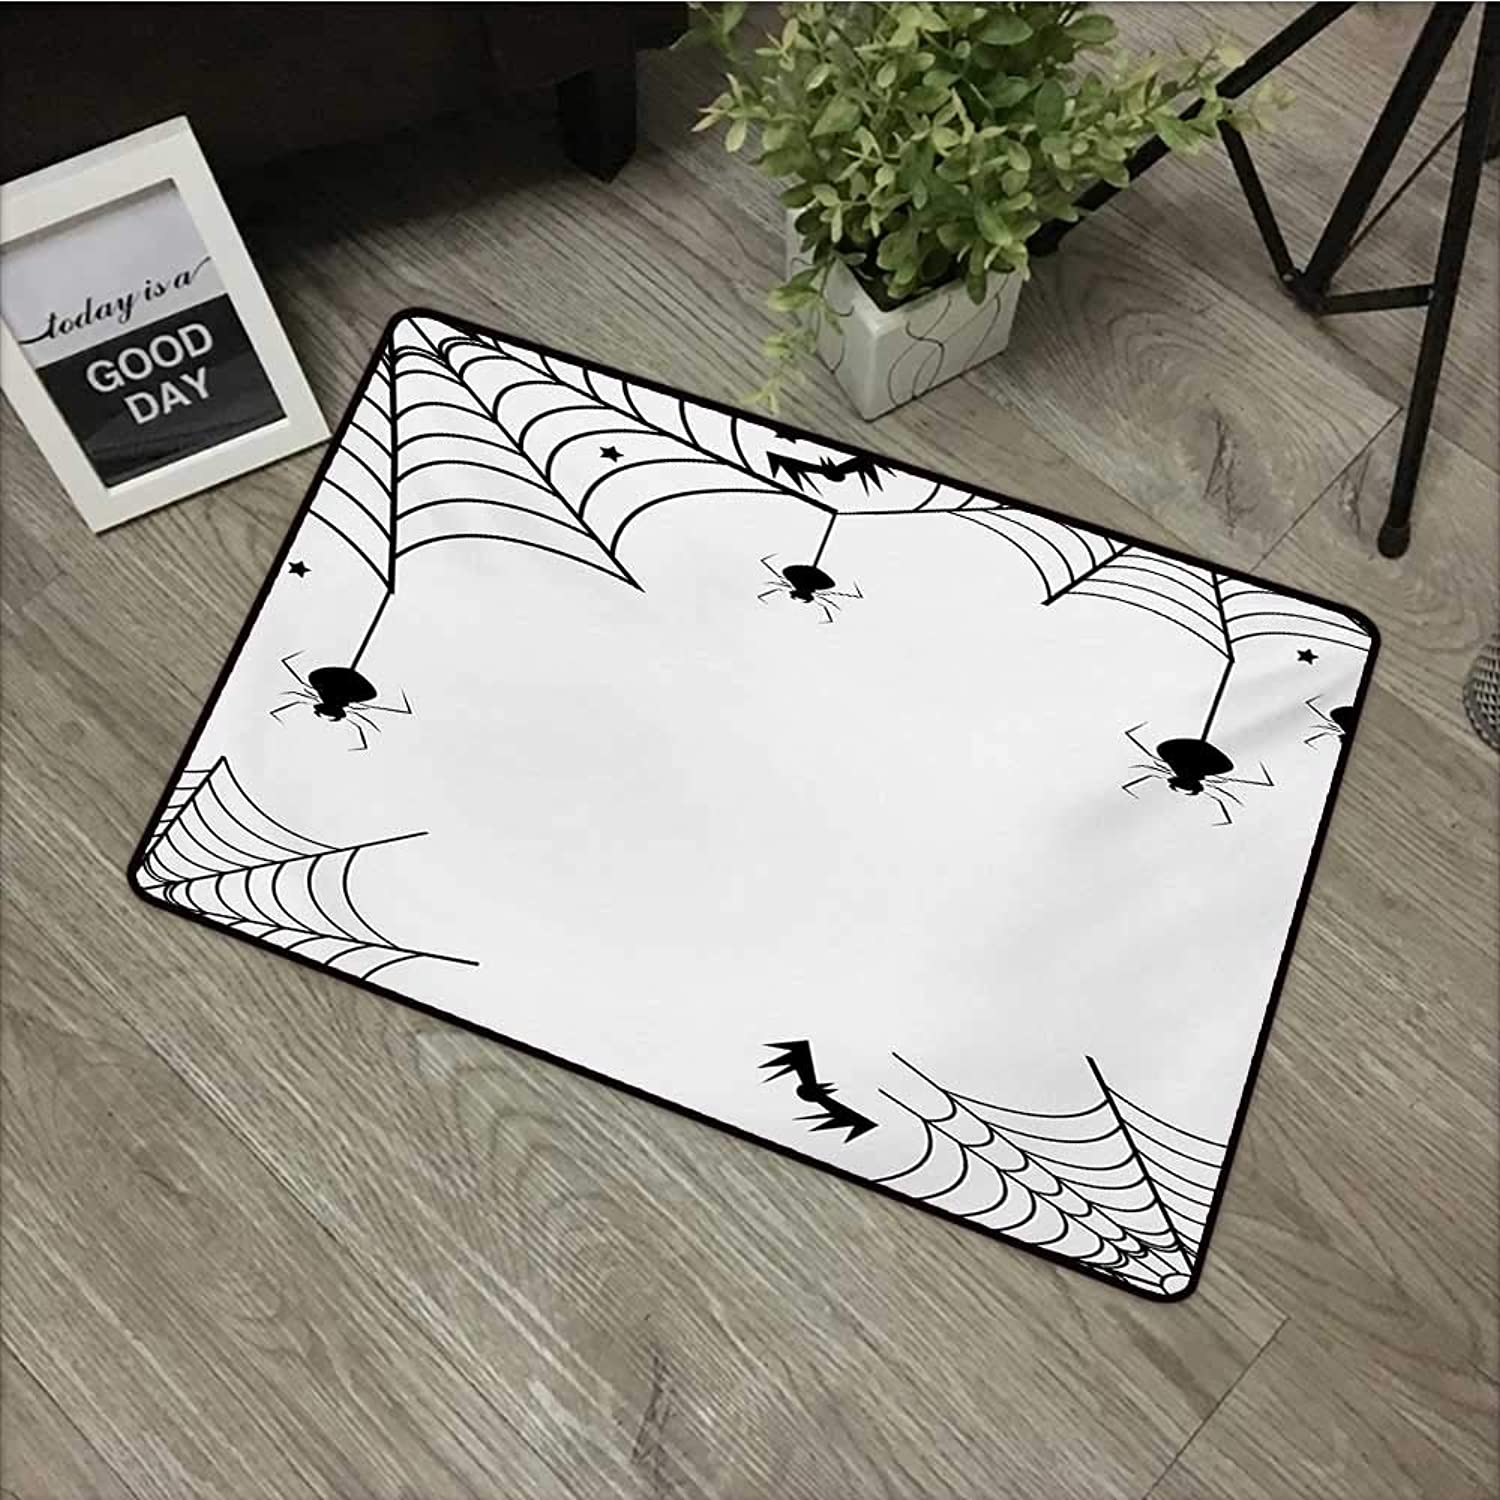 Pad W35 x L59 INCH Spider Web,Spiders Bats and Little Stars Monochrome Cobwebby Design Spooky Horror Elements,Black White Non-Slip, with Non-Slip Backing,Non-Slip Door Mat Carpet